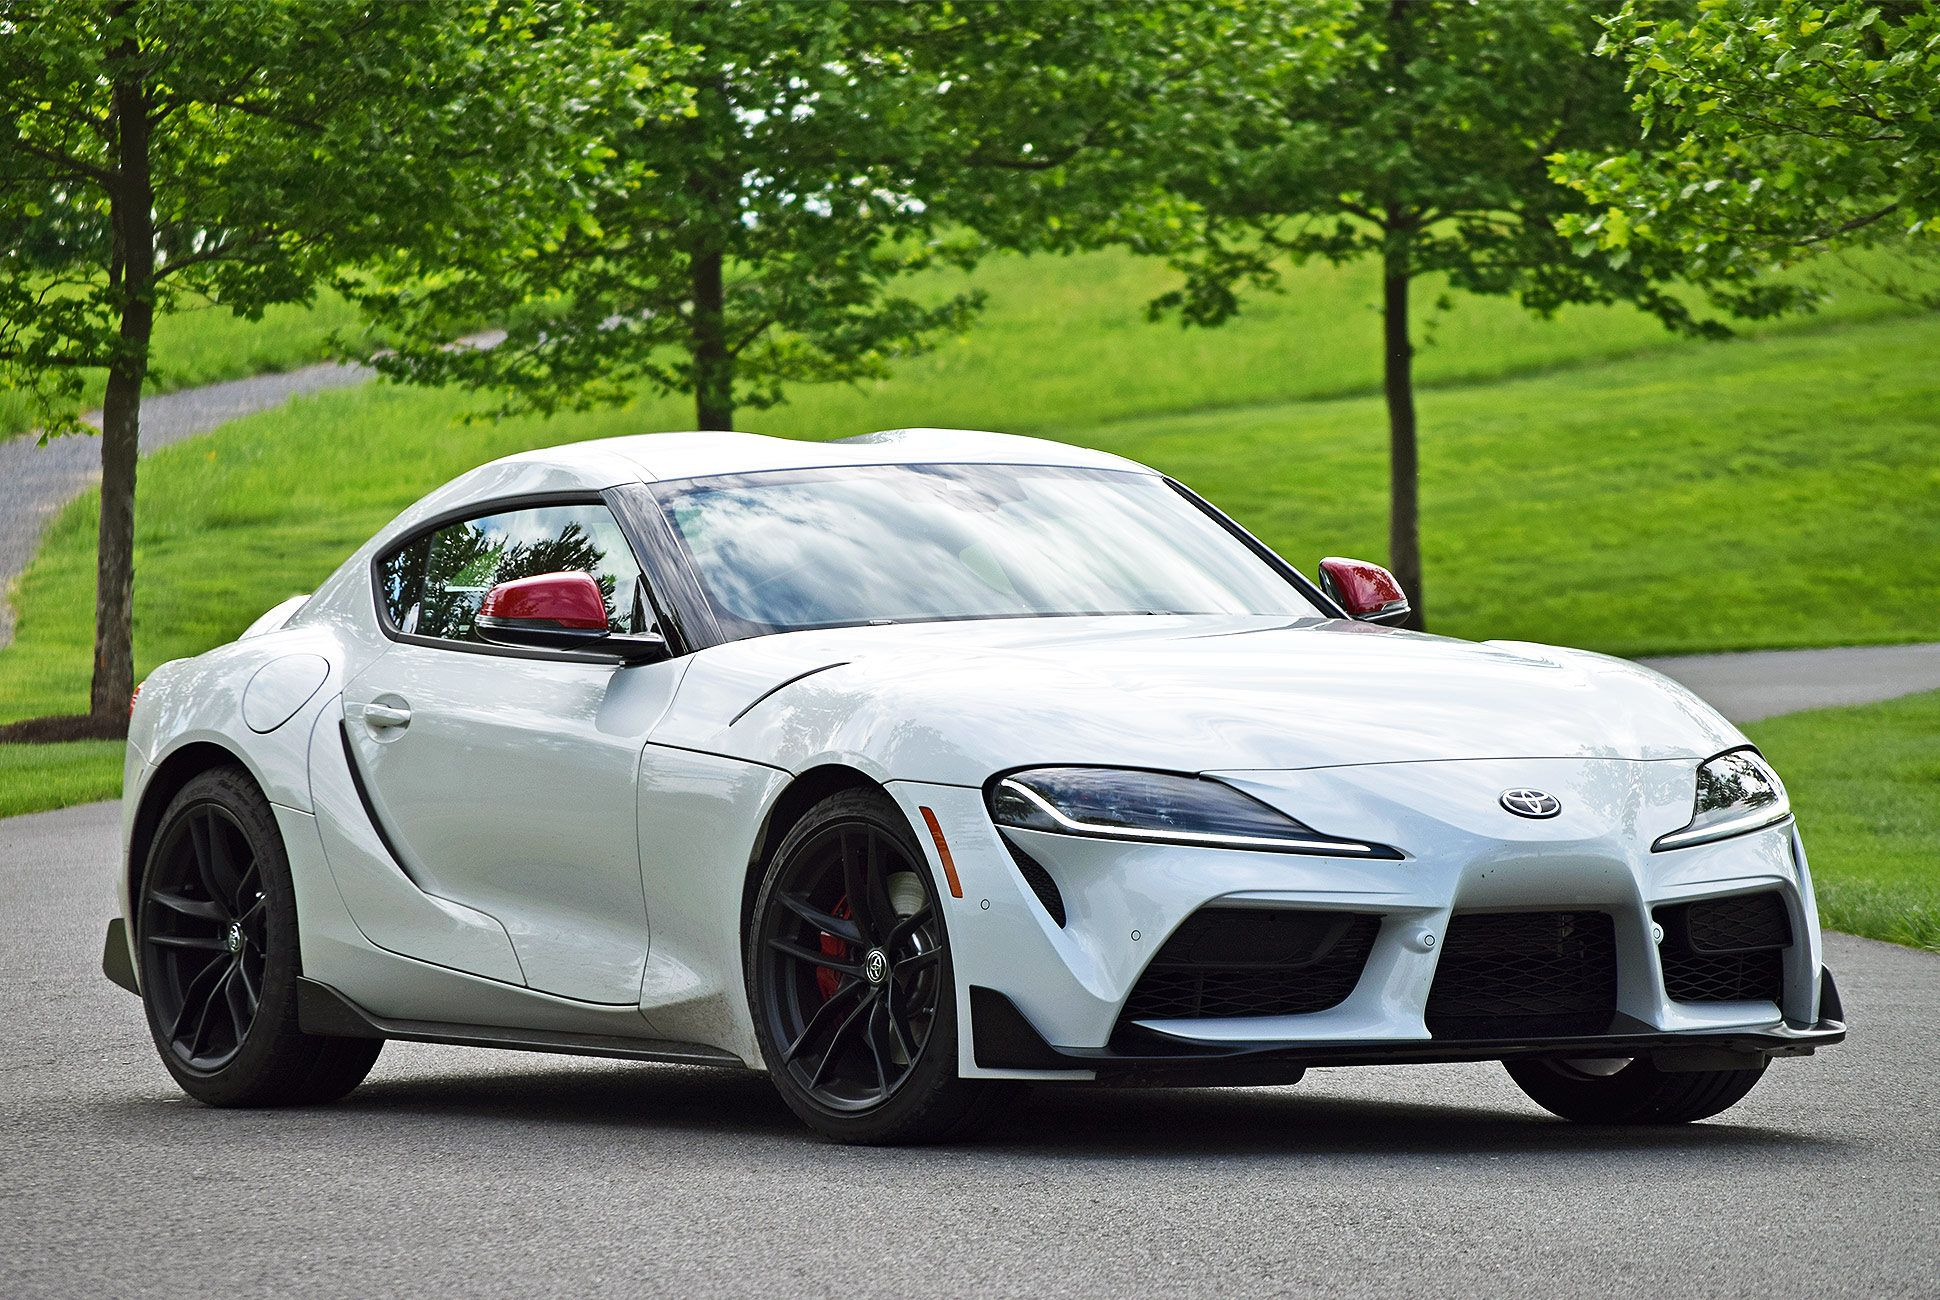 2020-Toyota-Supra-Gr-Review-gear-patrol-slide-1